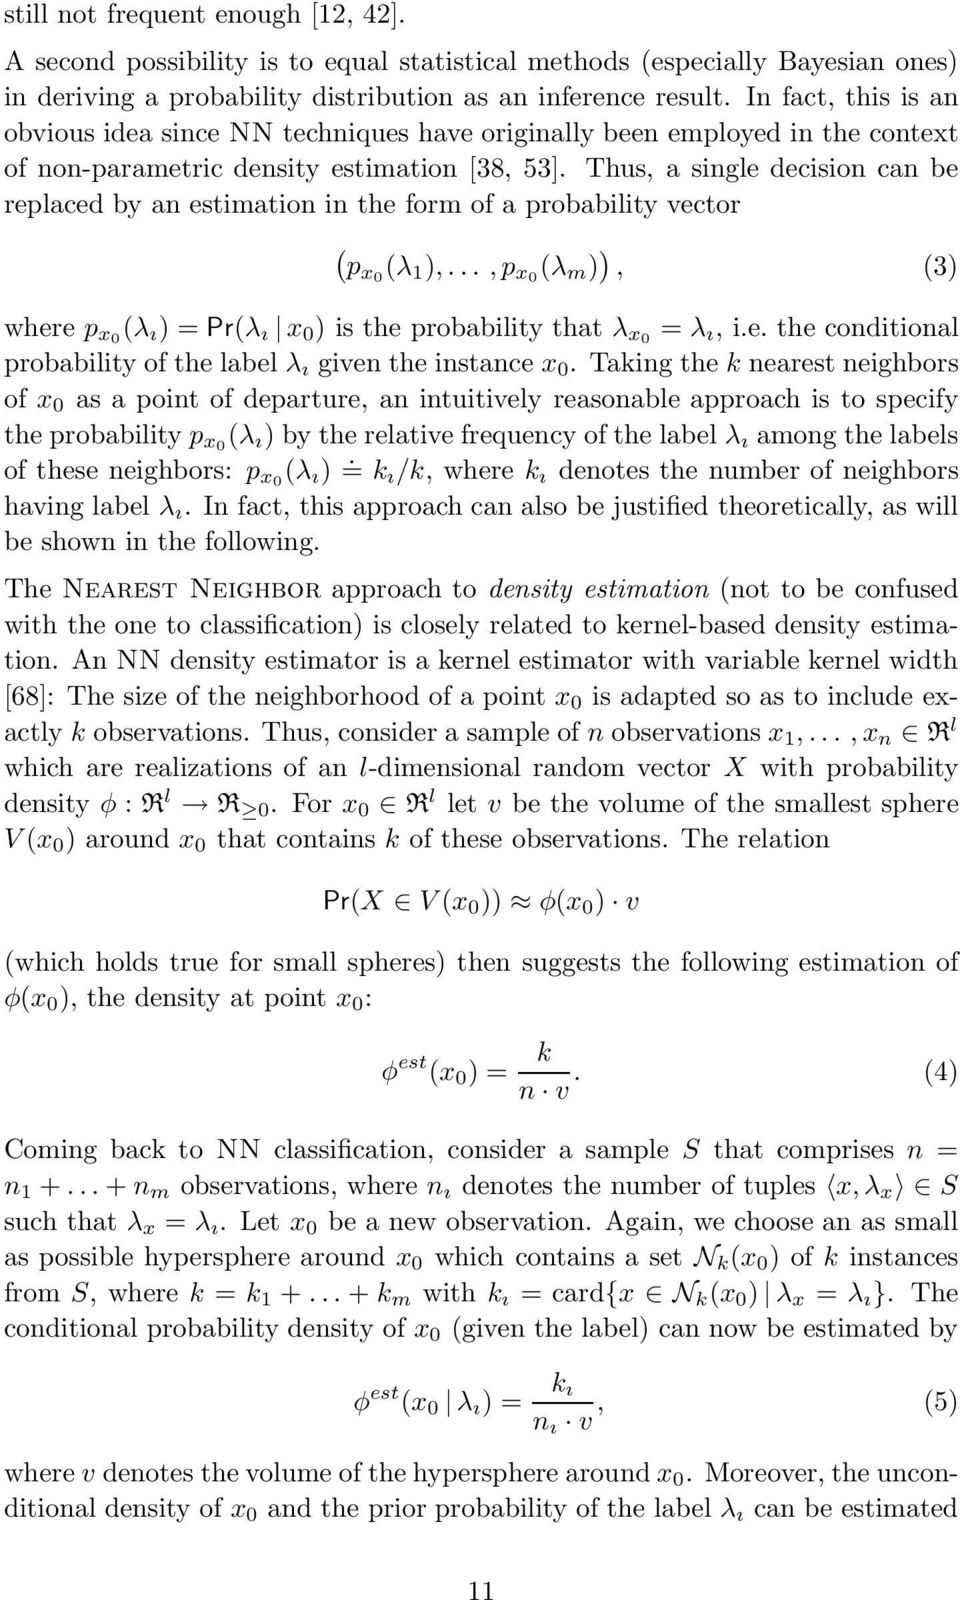 Thus, a single decision can be replaced by an estimation in the form of a probability vector ( px0 (λ 1 ),...,p x0 (λ m ) ), (3) where p x0 (λ ı )=Pr(λ ı x 0 ) is the probability that λ x0 = λ ı, i.e. the conditional probability of the label λ ı given the instance x 0.